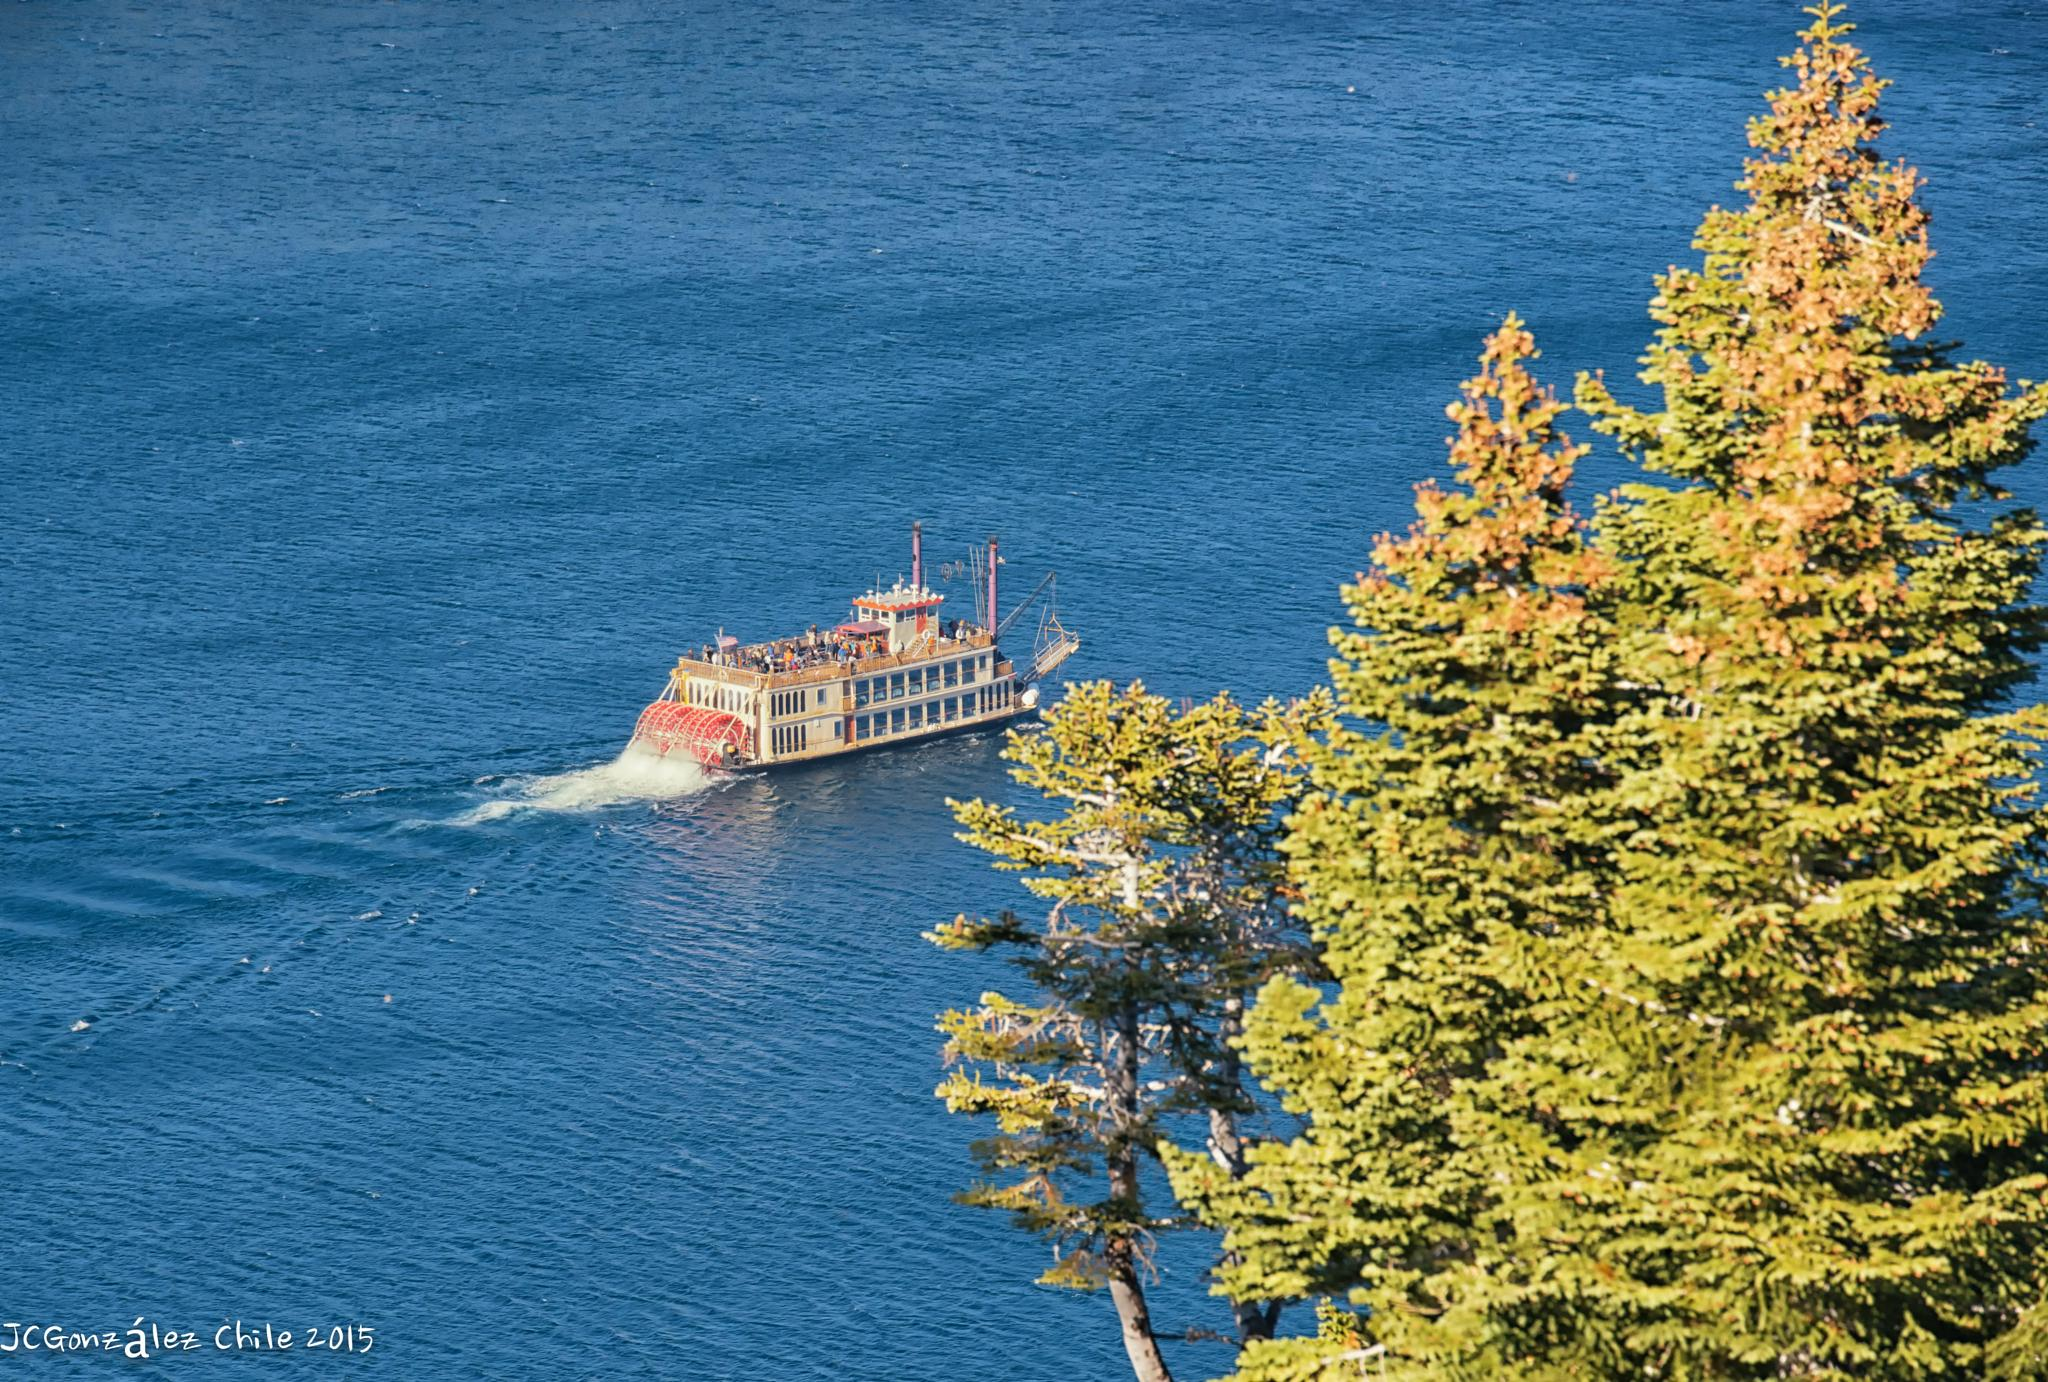 Paddle steamer by JuanCaPhotography